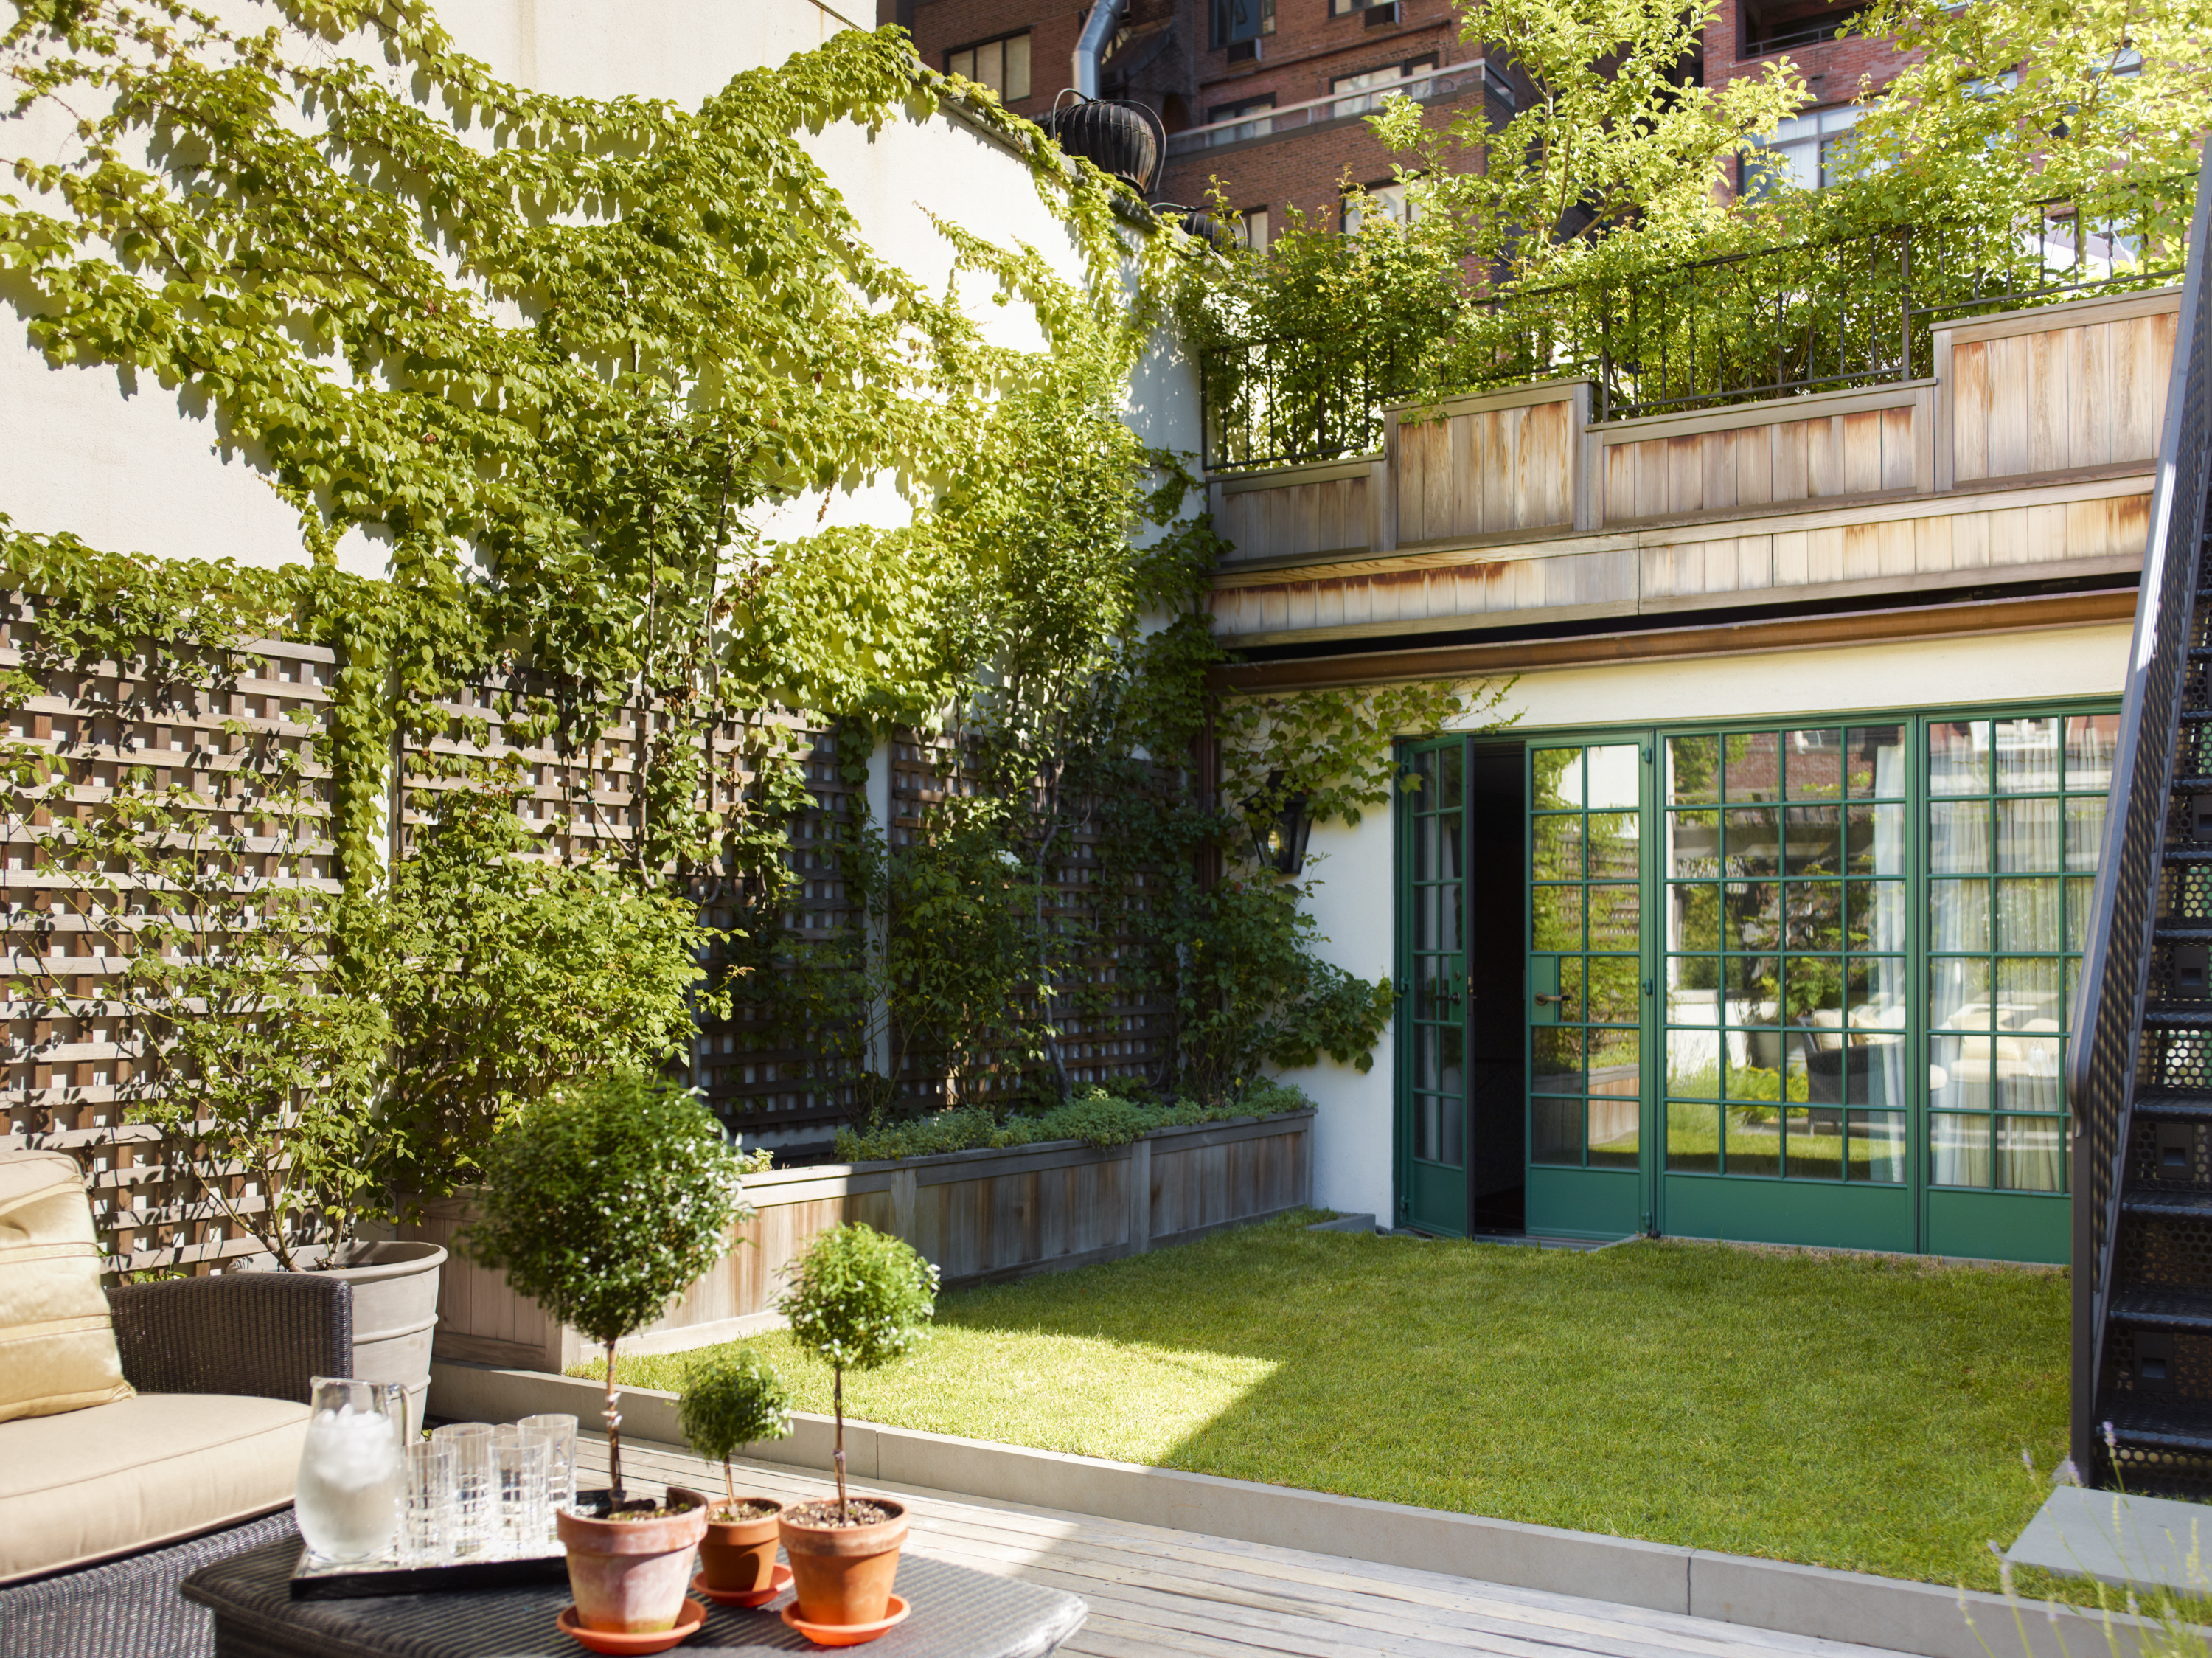 An Ues Townhouse Is Transformed In The Arts And Crafts Style With A